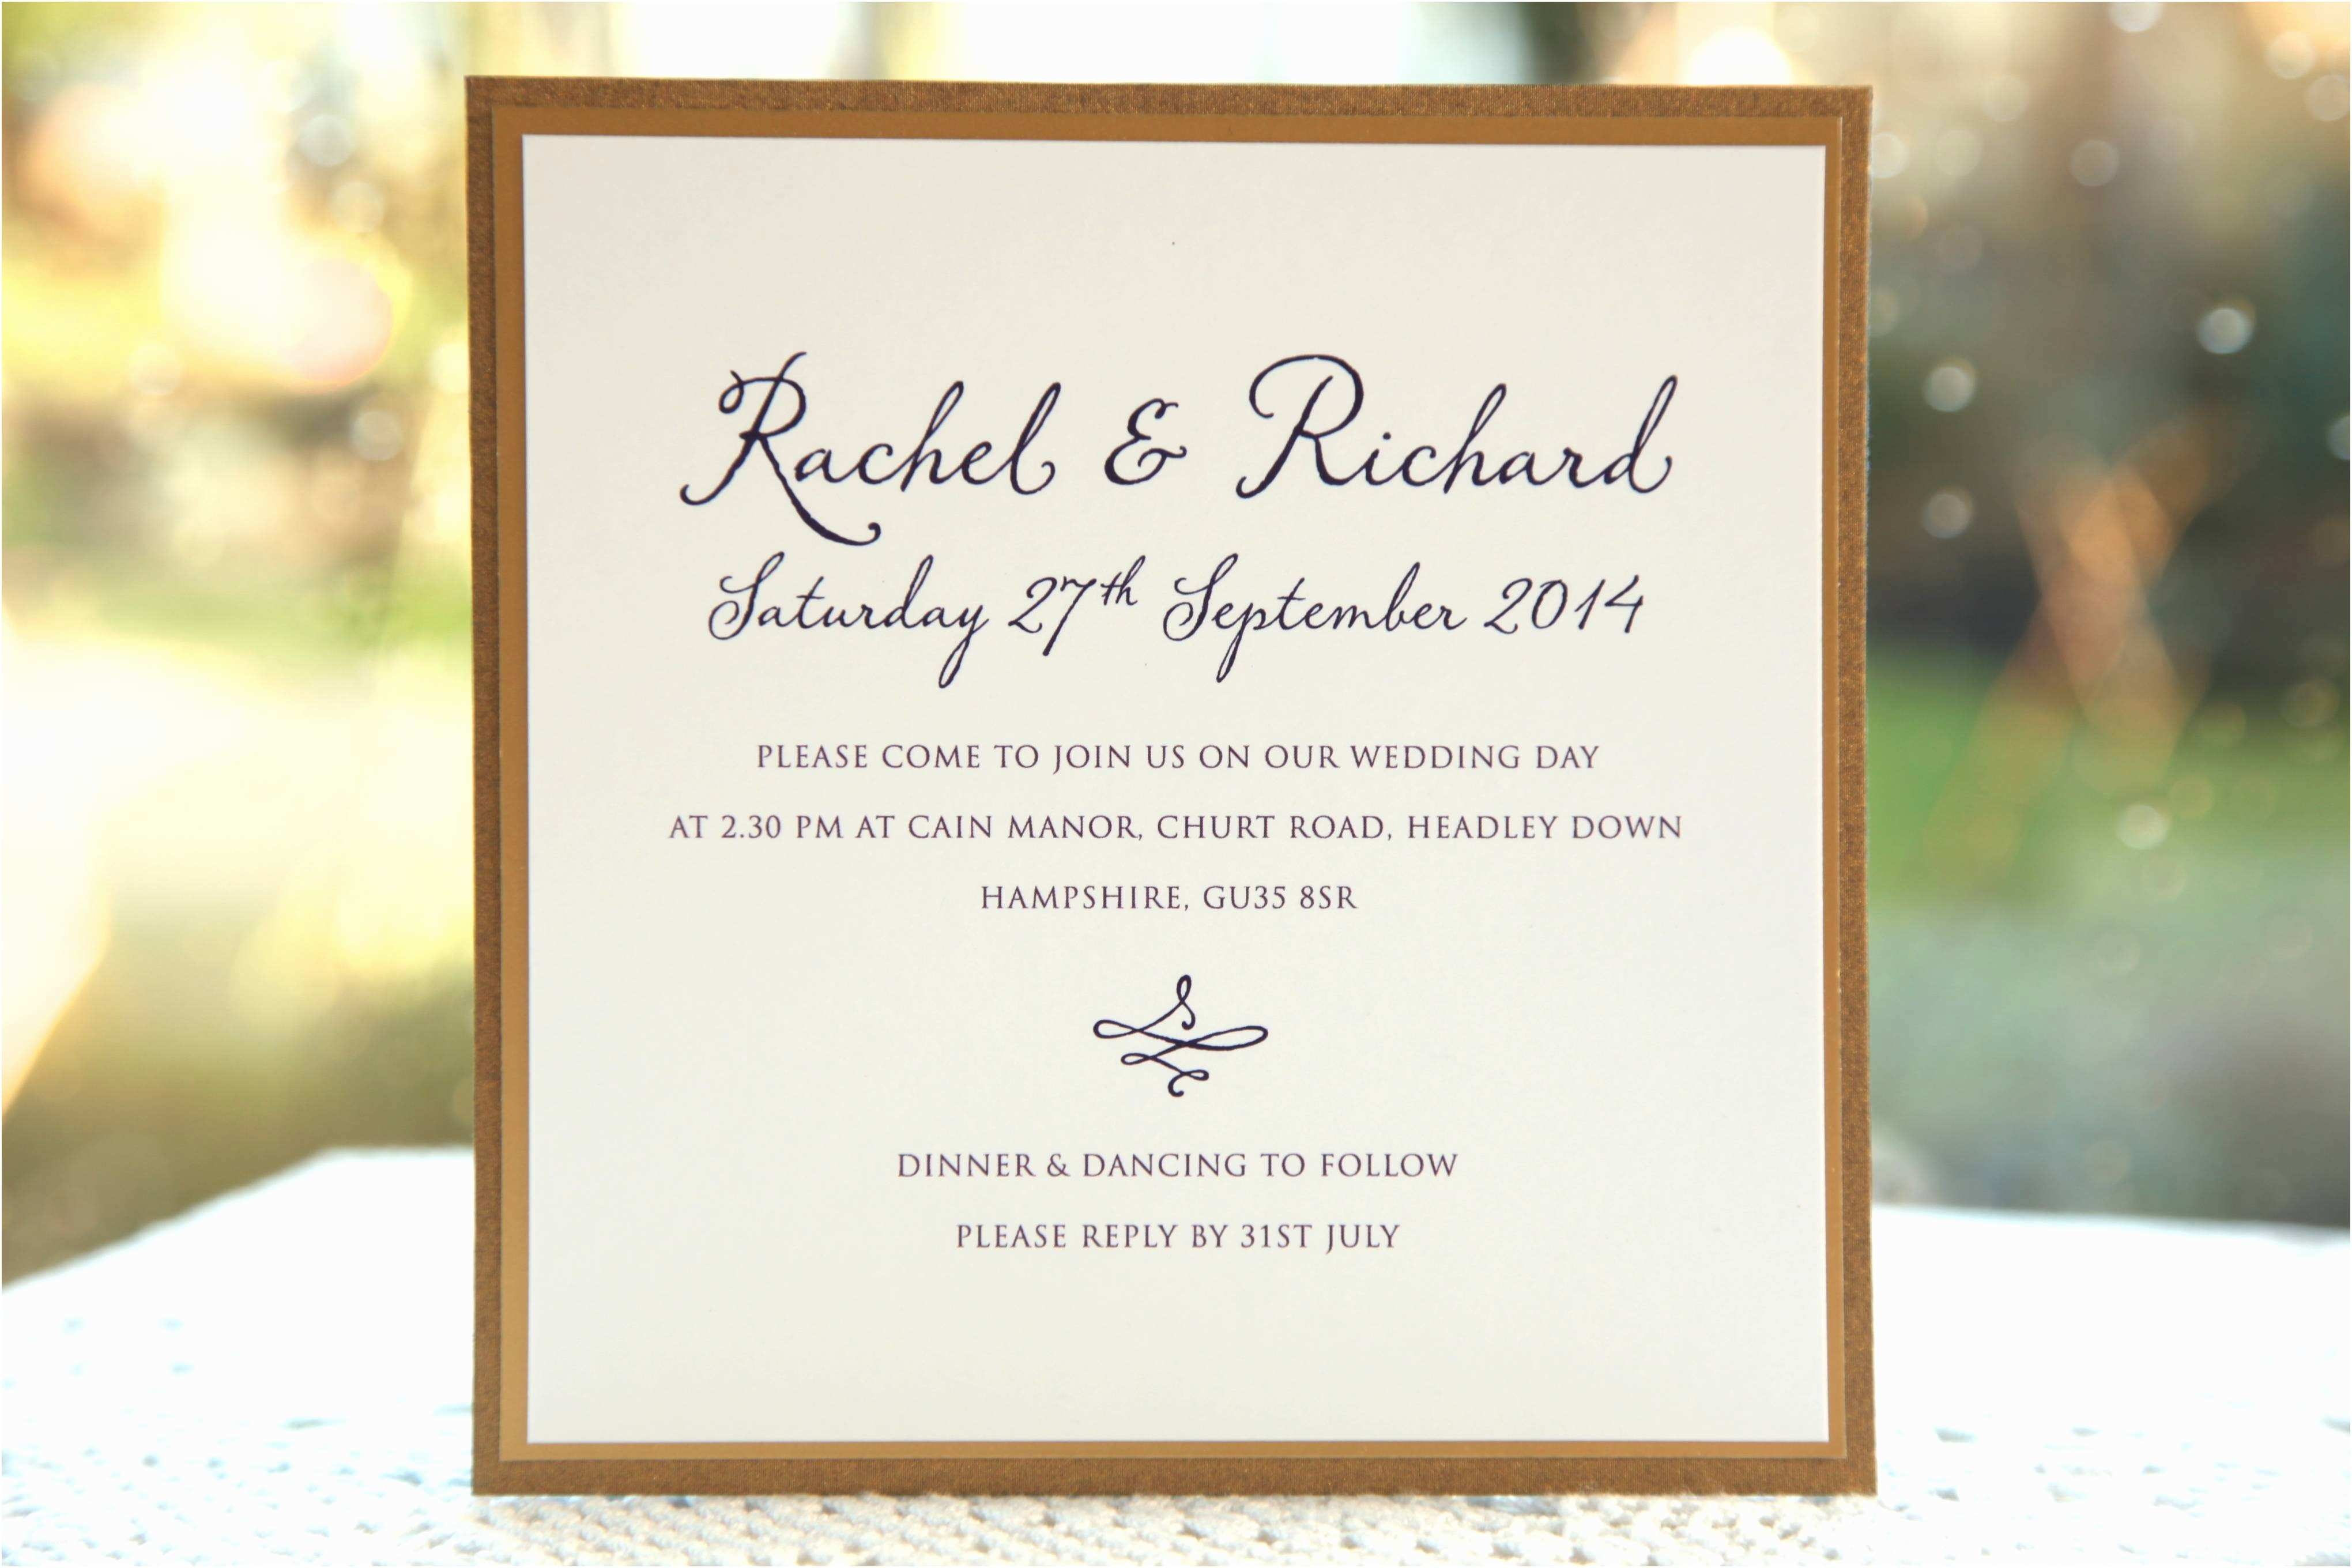 Online Wedding Invitations Uk New Wedding Invitation Design Line Uk